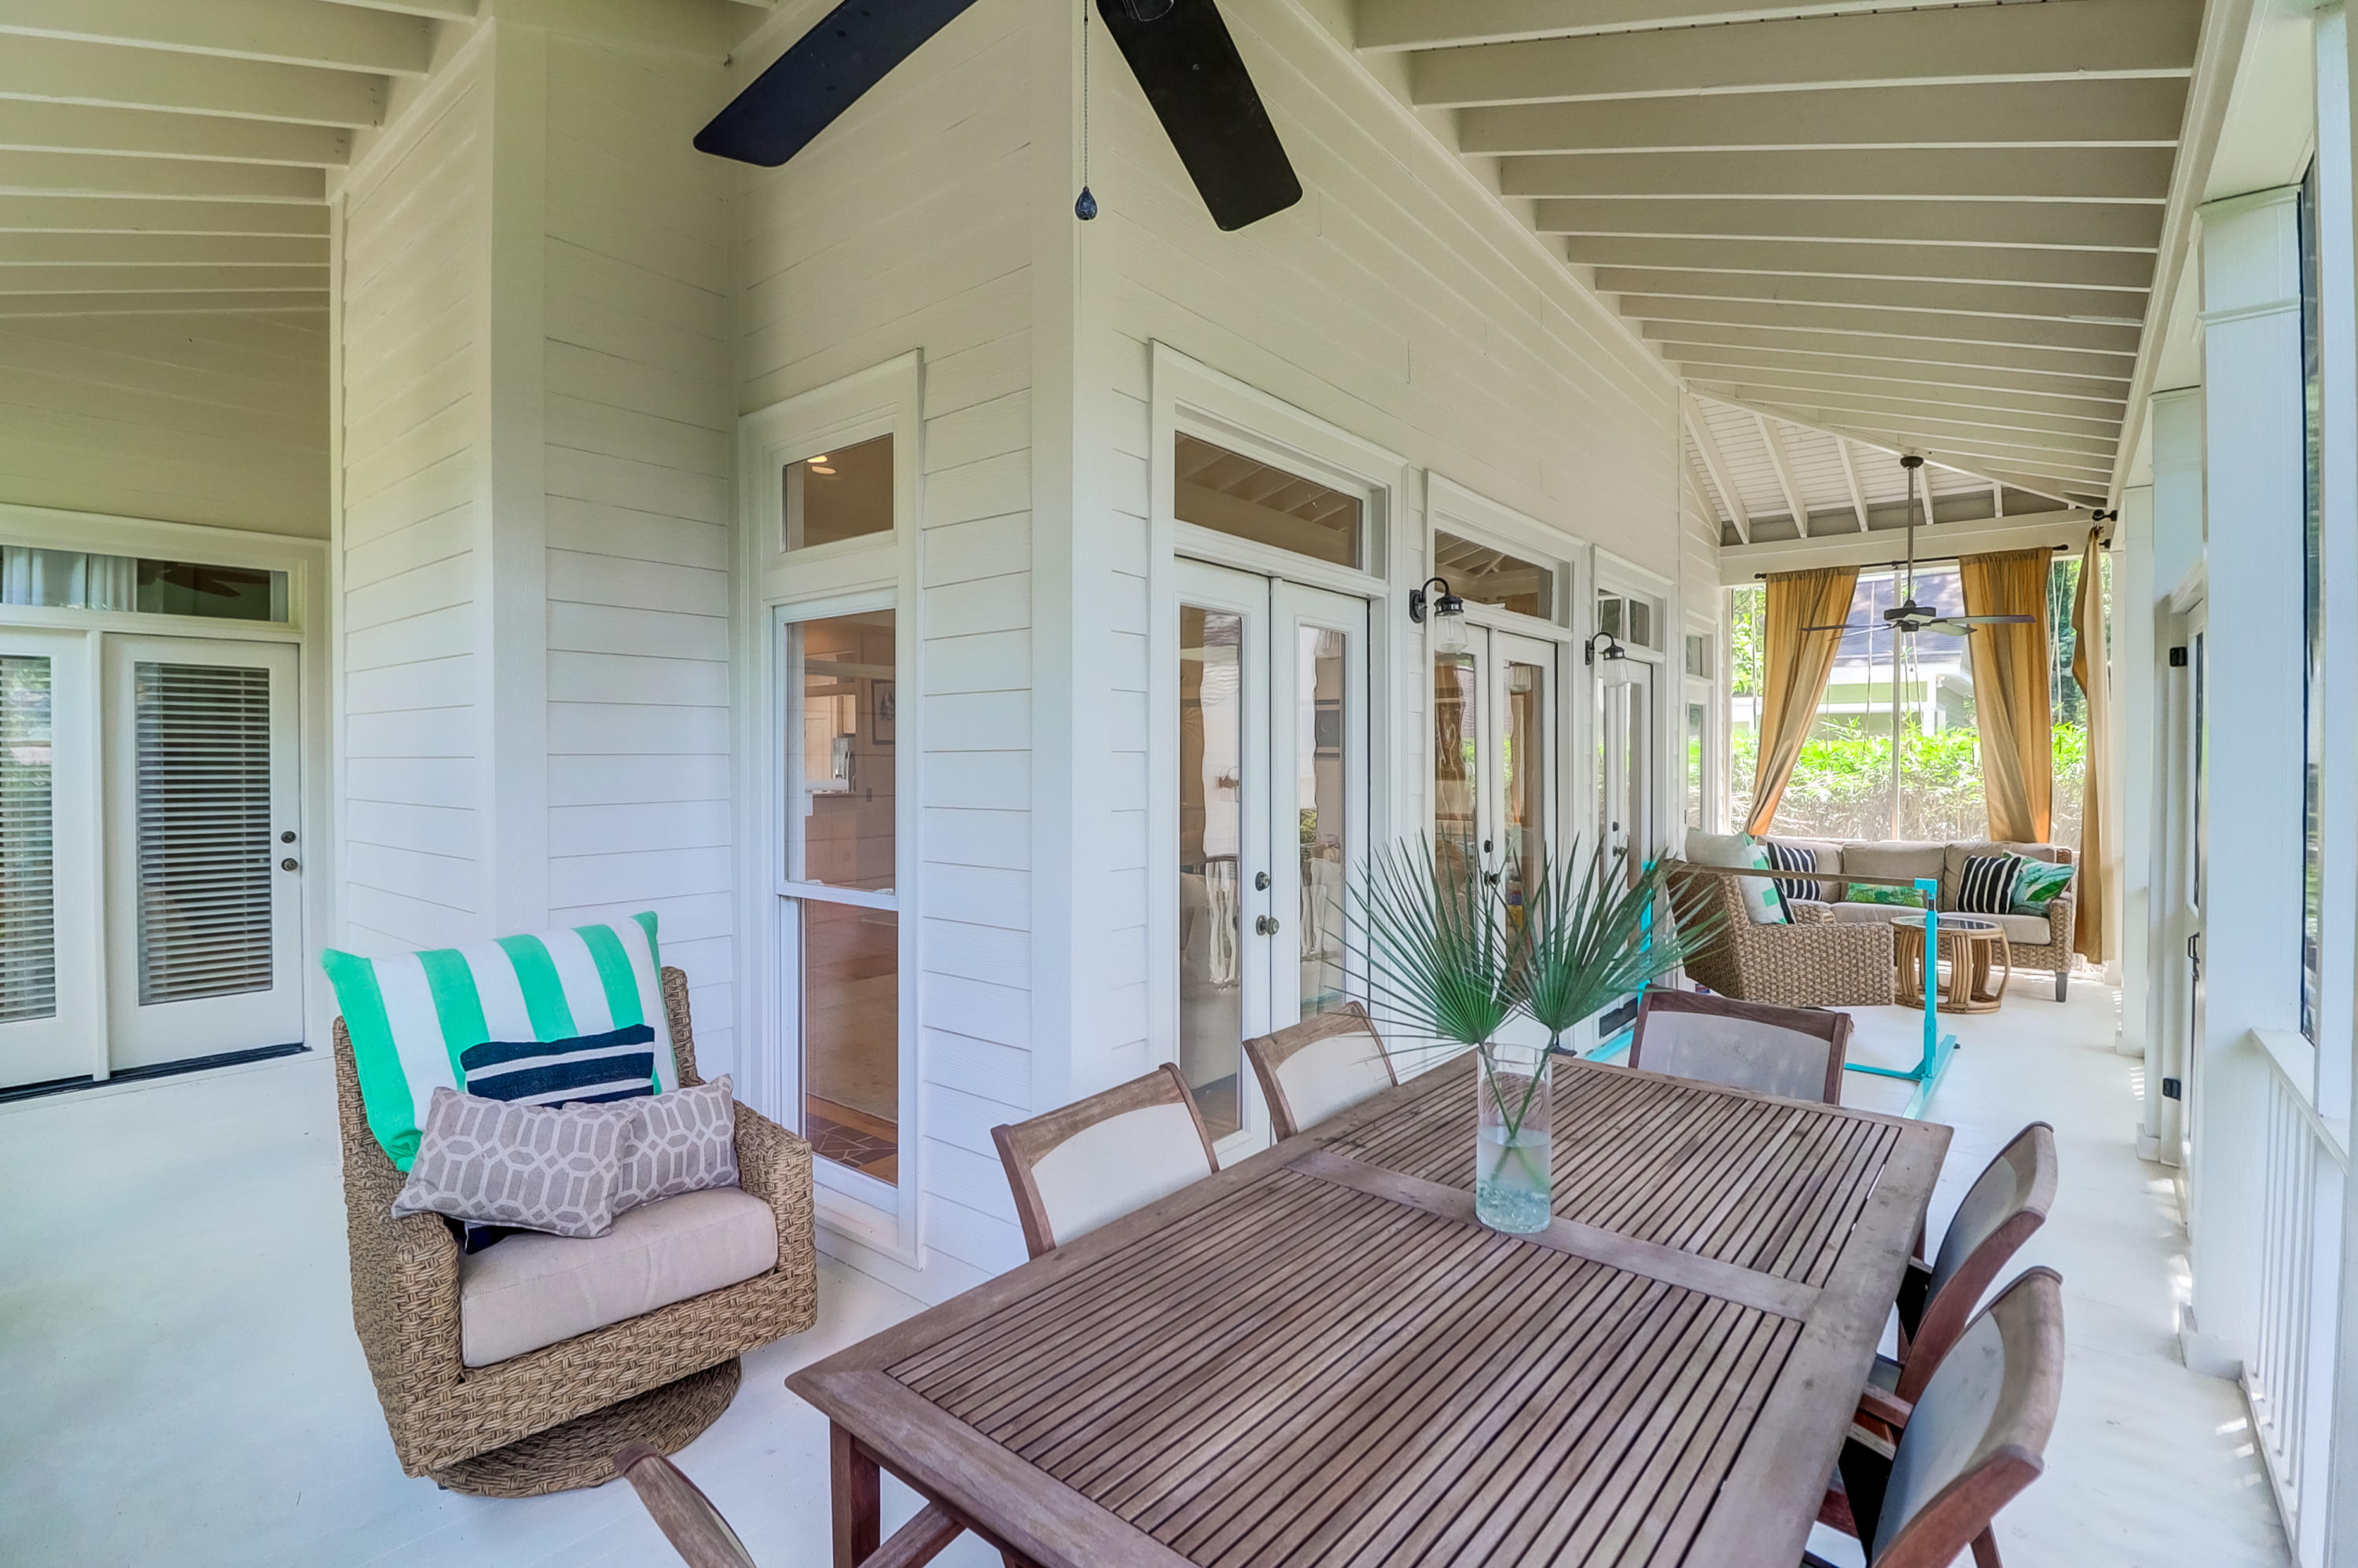 The Villages In St Johns Woods Homes For Sale - 5056 Coral Reef Dr, Johns Island, SC - 9